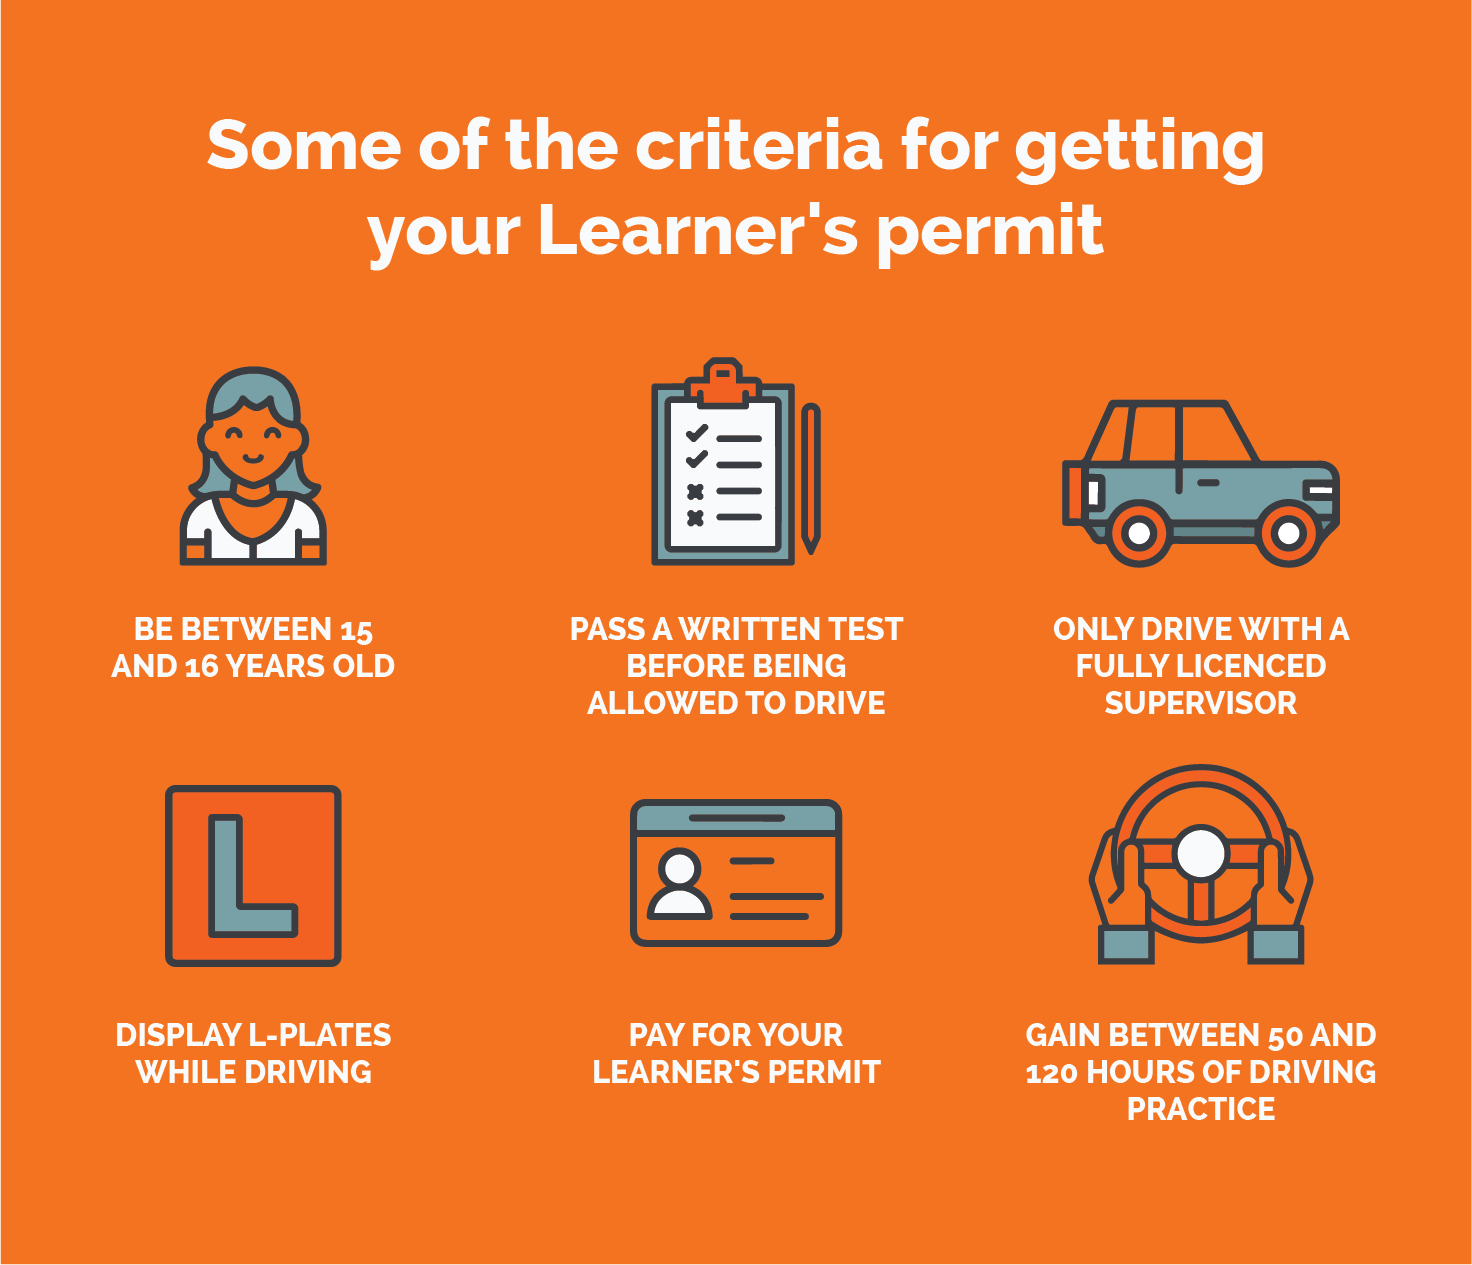 Car Insurance Companies That Accept Learners Permit